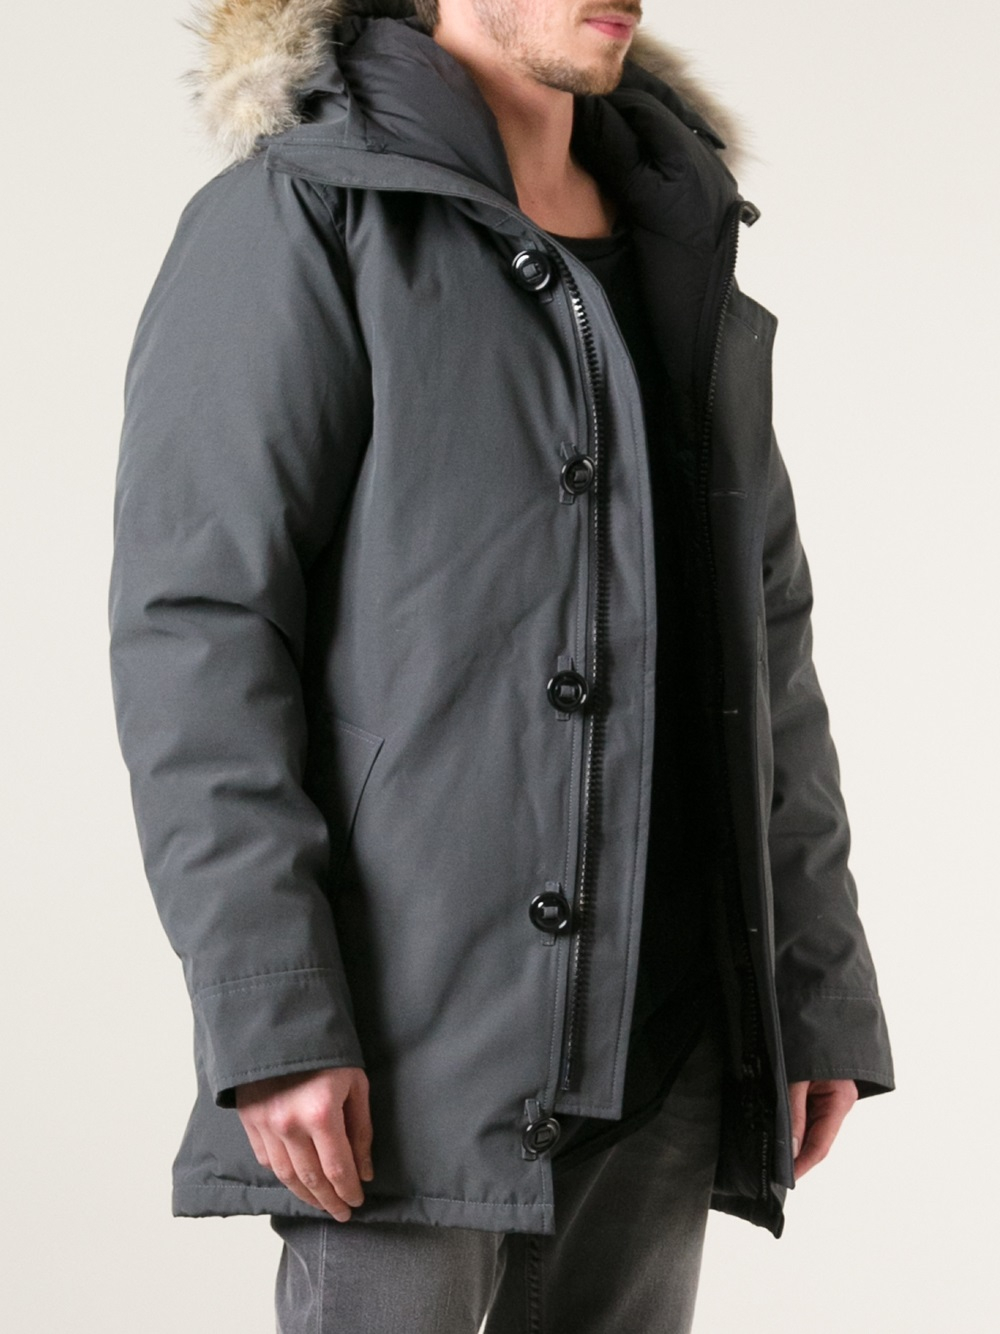 lyst canada goose 39 chateau 39 parka in gray for men. Black Bedroom Furniture Sets. Home Design Ideas